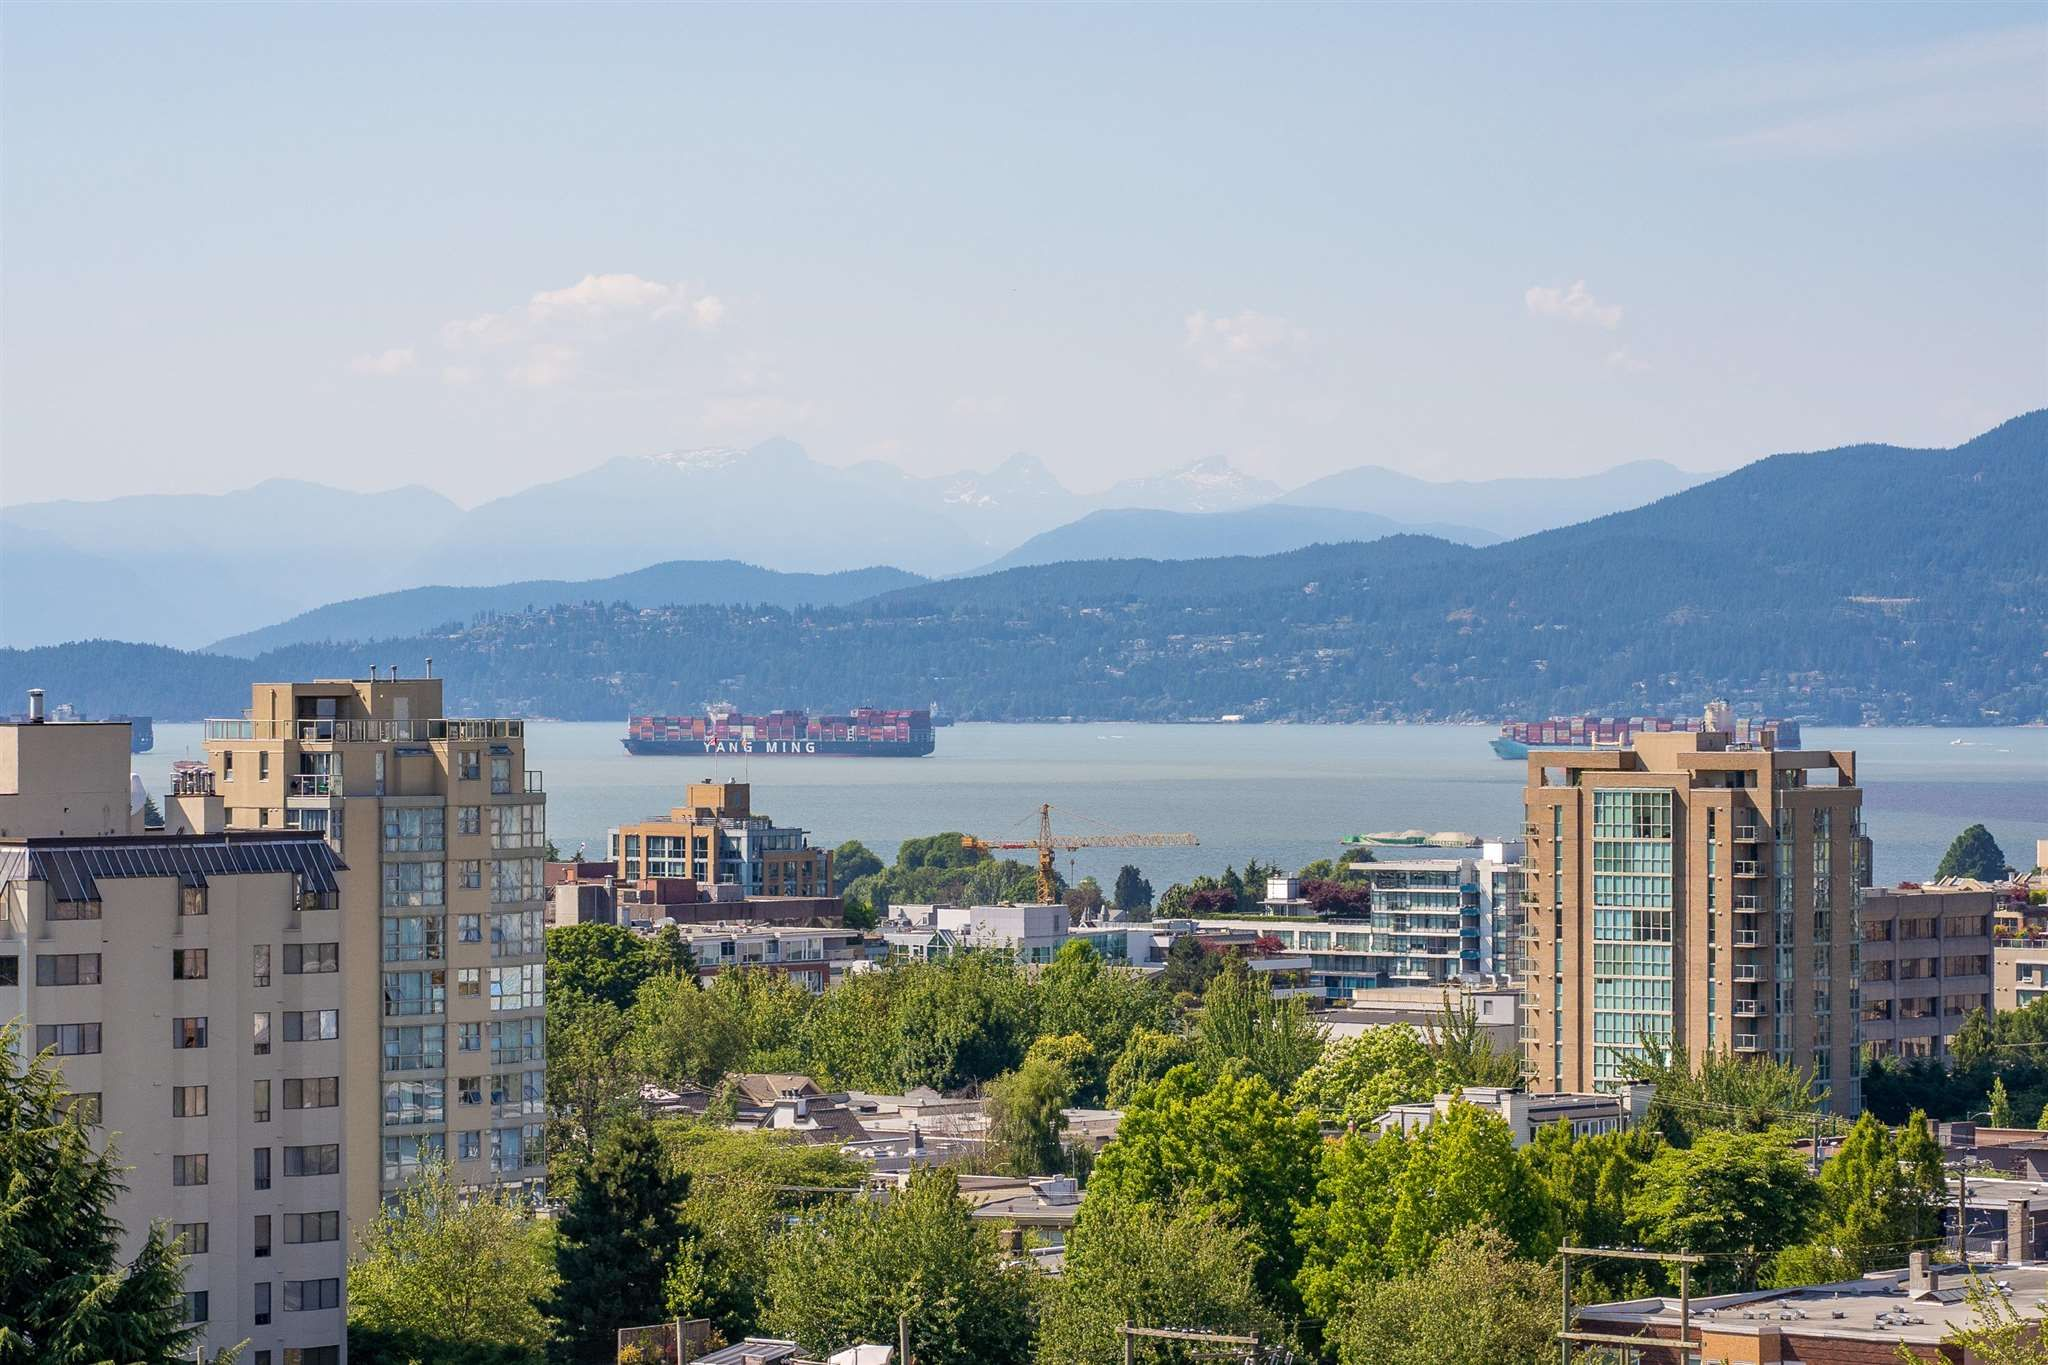 Main Photo: 1102 1468 W 14TH AVENUE in Vancouver: Fairview VW Condo for sale (Vancouver West)  : MLS®# R2599703